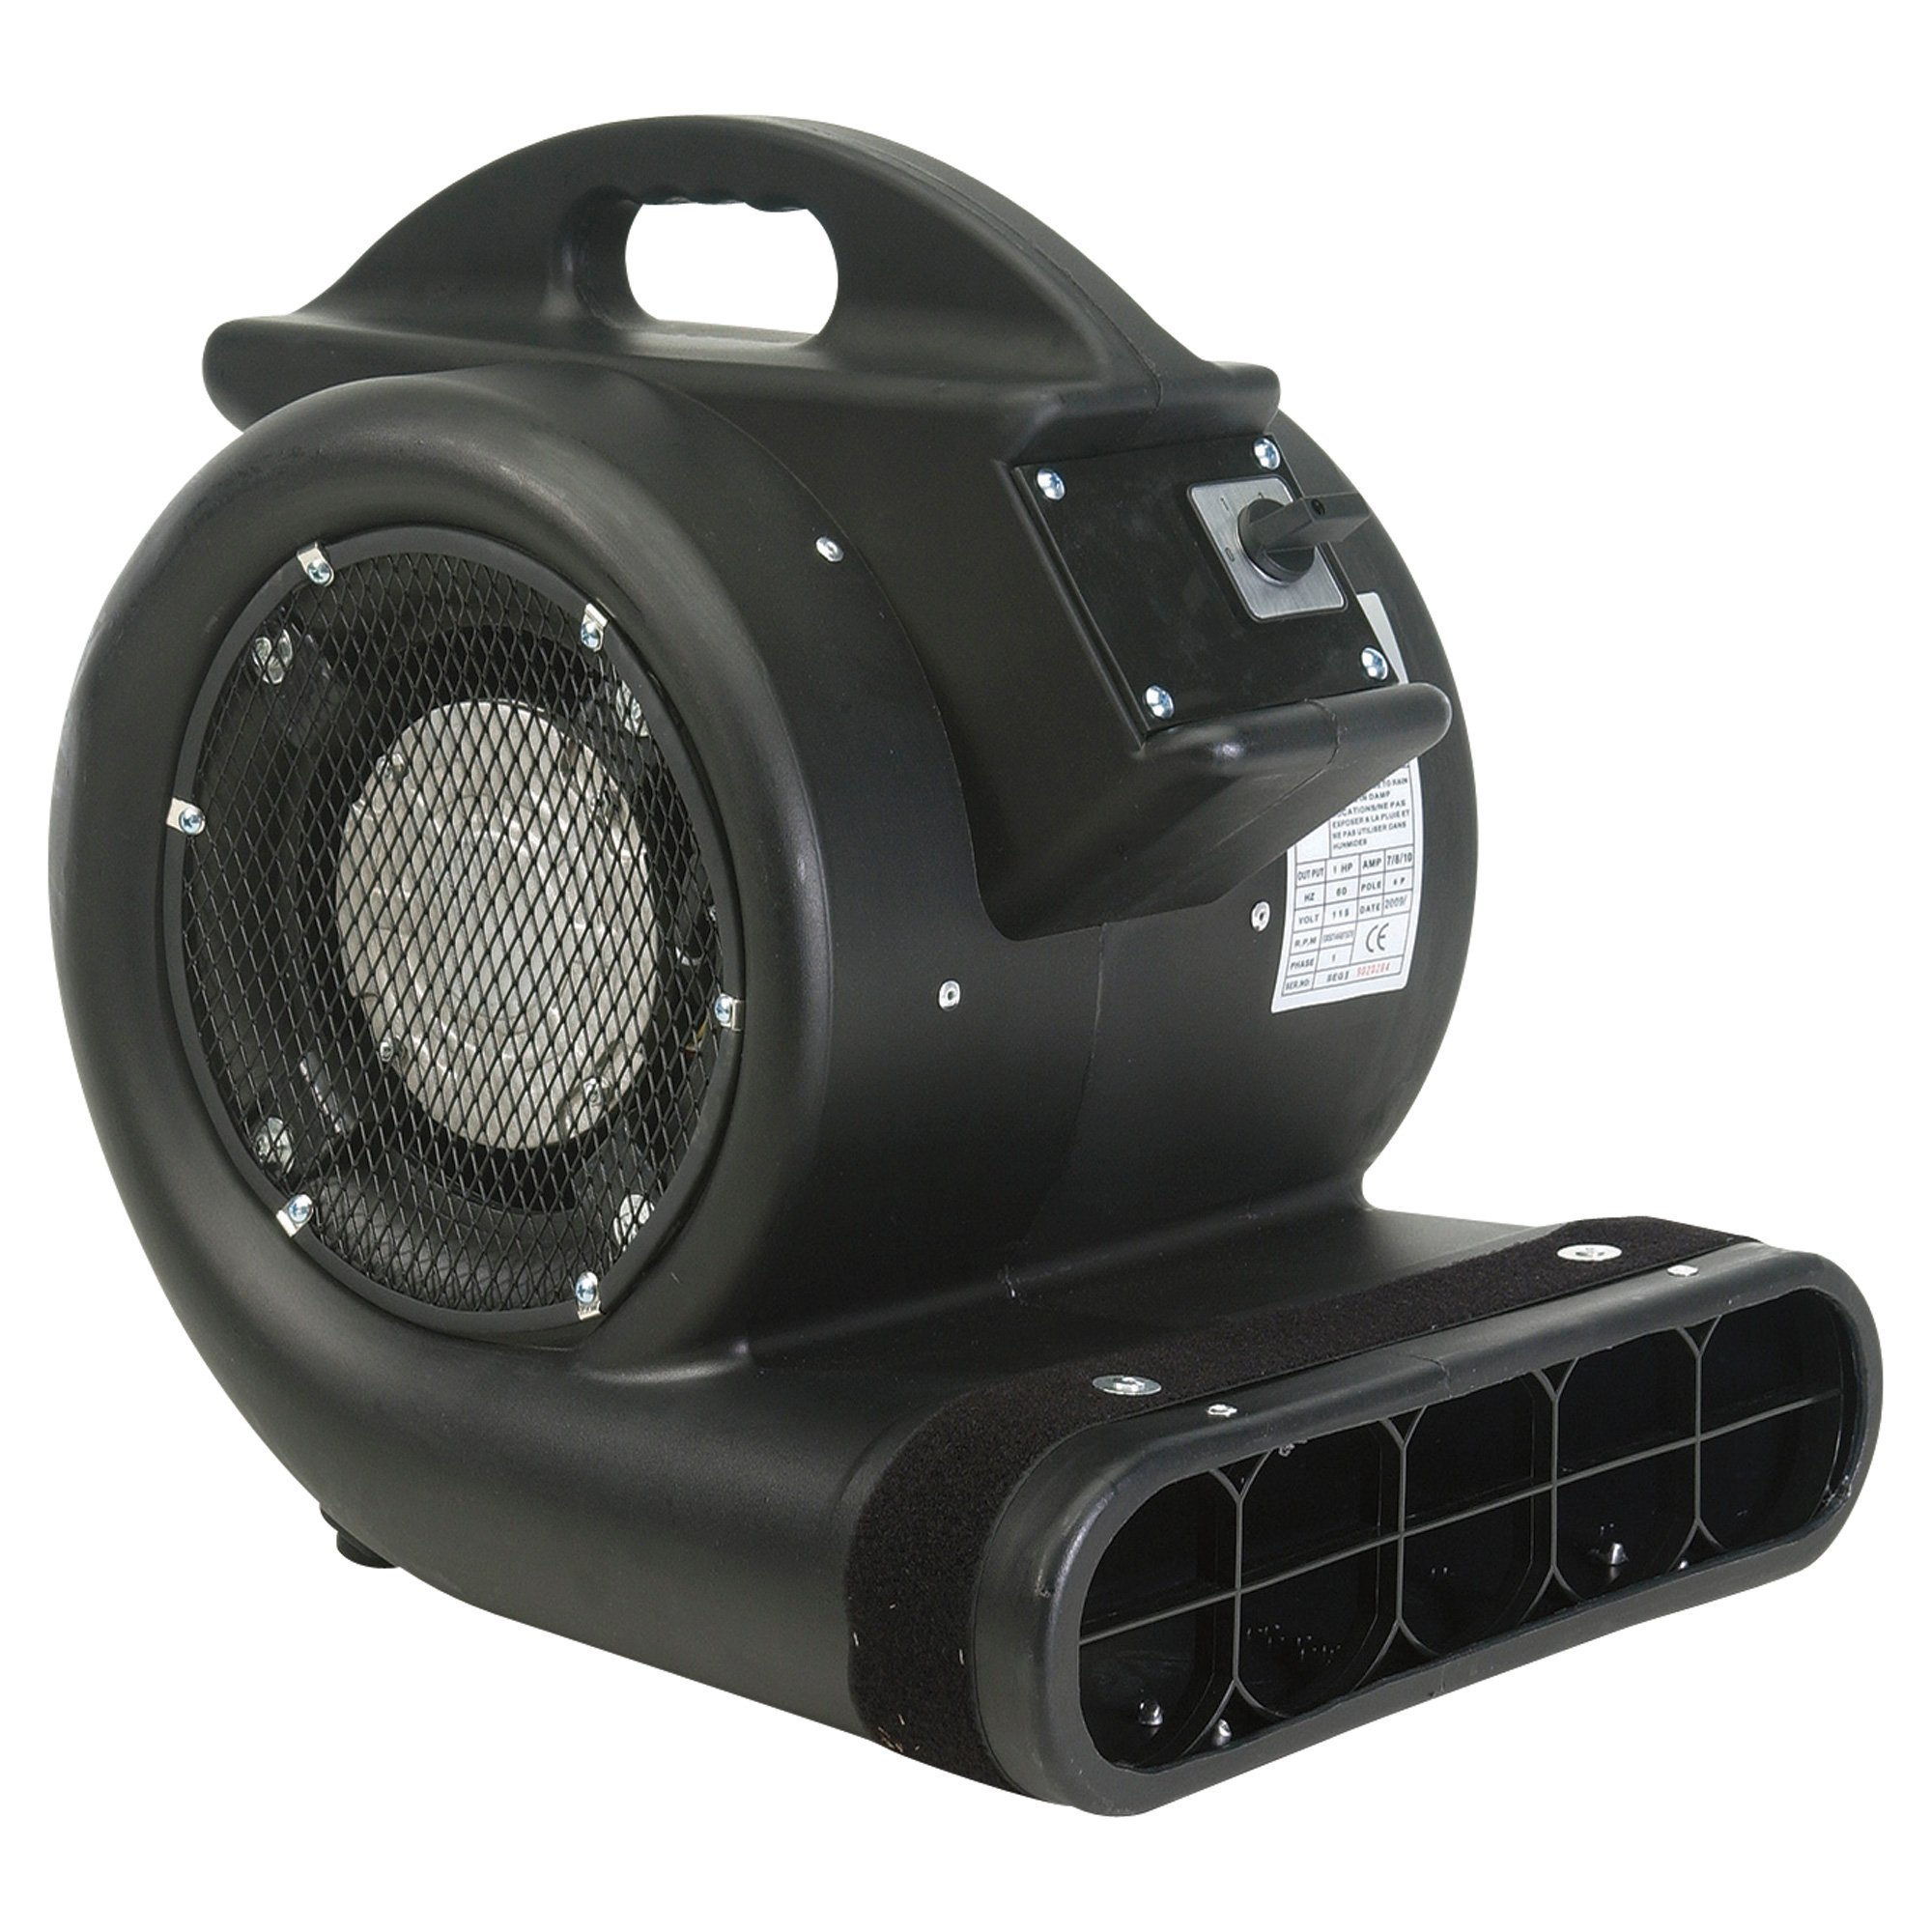 Air Foxx Carpet Floor Blower 3 4 Hp 3450 Cfm Model